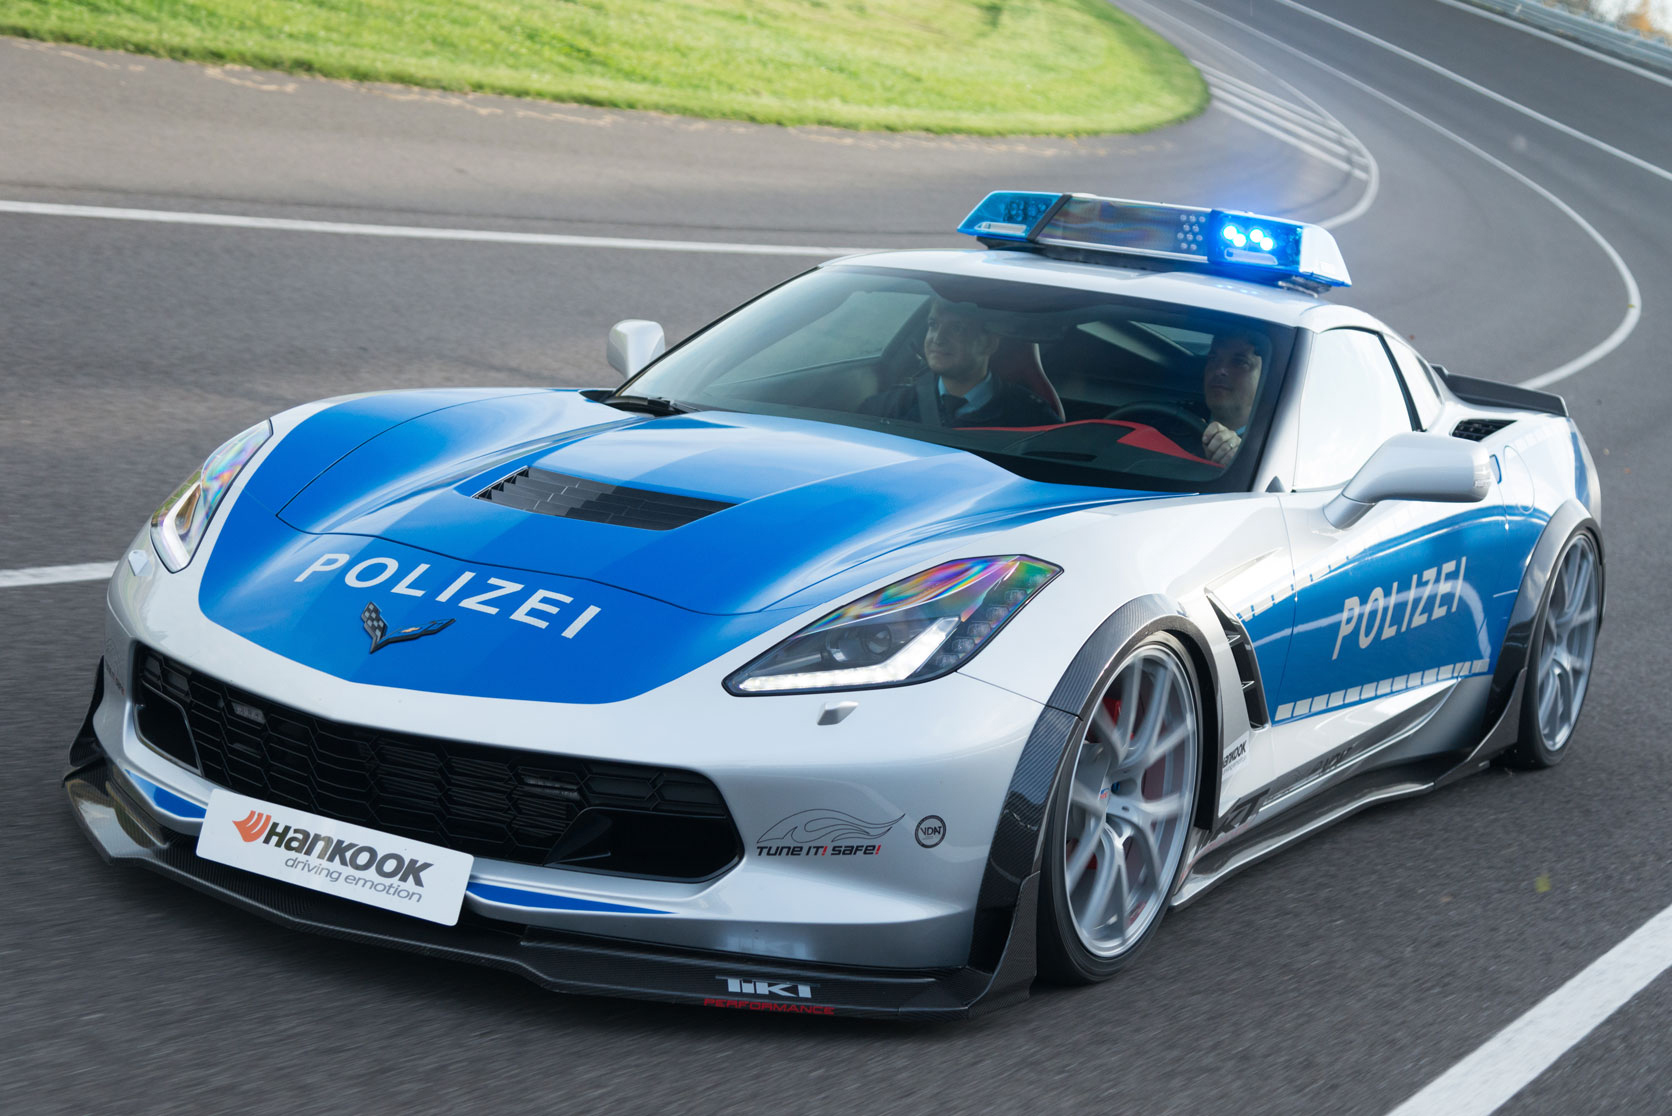 German Police Chevrolet Corvette 1